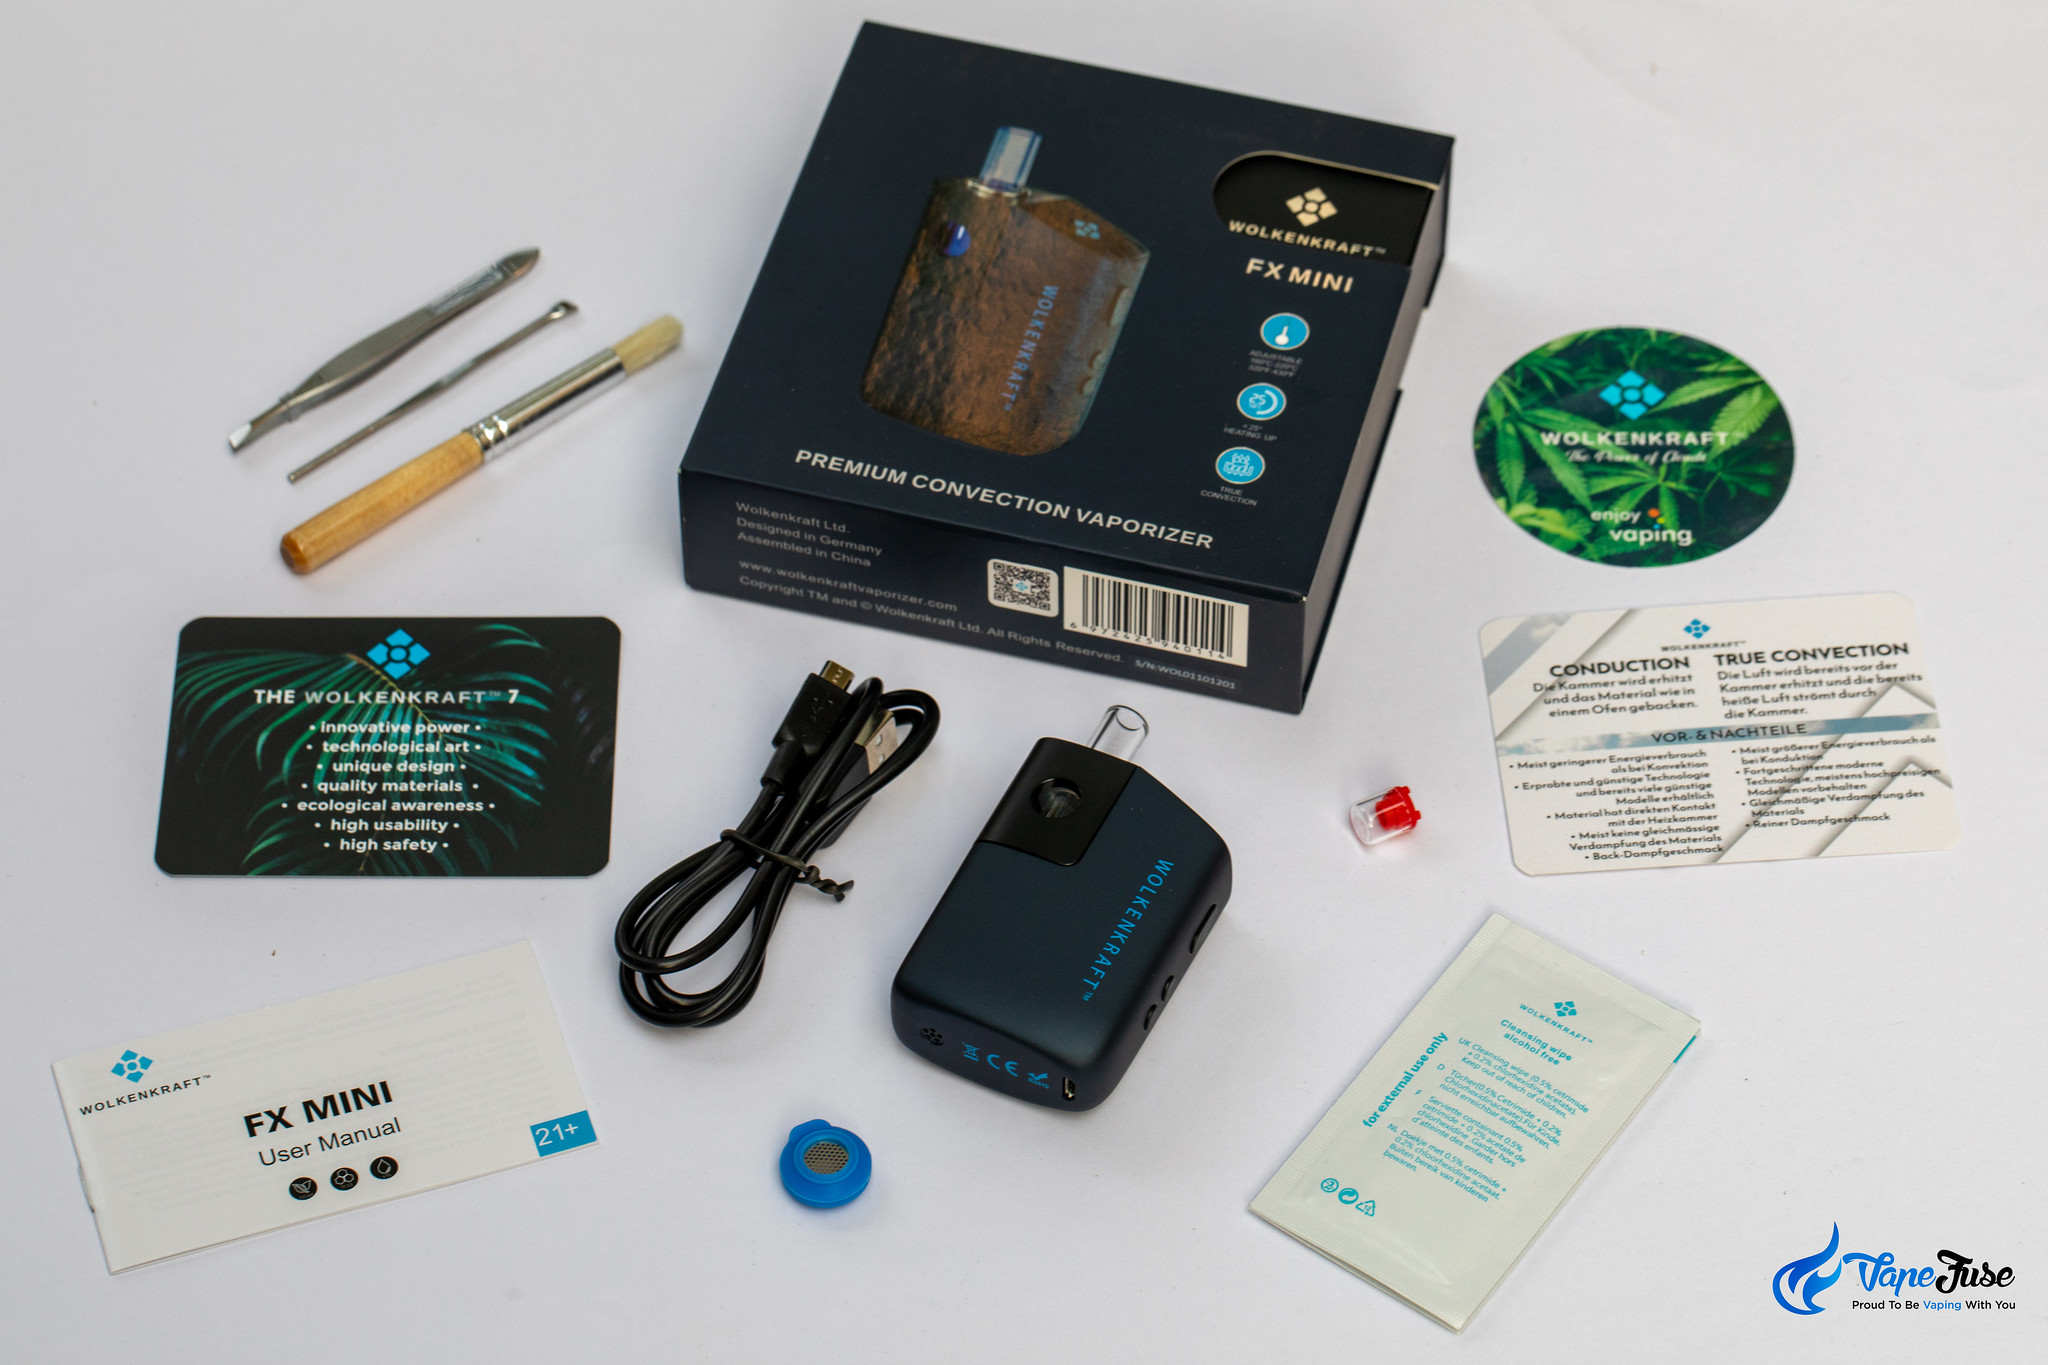 Wolkenkraft FX Mini Dry Herb Vaporizer kit inclusions